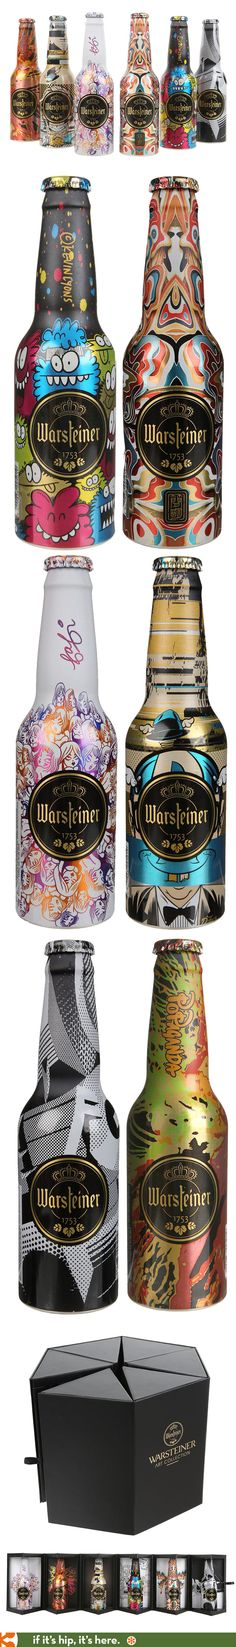 Packaging de produit - Bouteille de Warsteiner édition 2014 by six artistes designer : Kevin Lyons, Fafi, Ron English, D*Face, James Jean et Roids